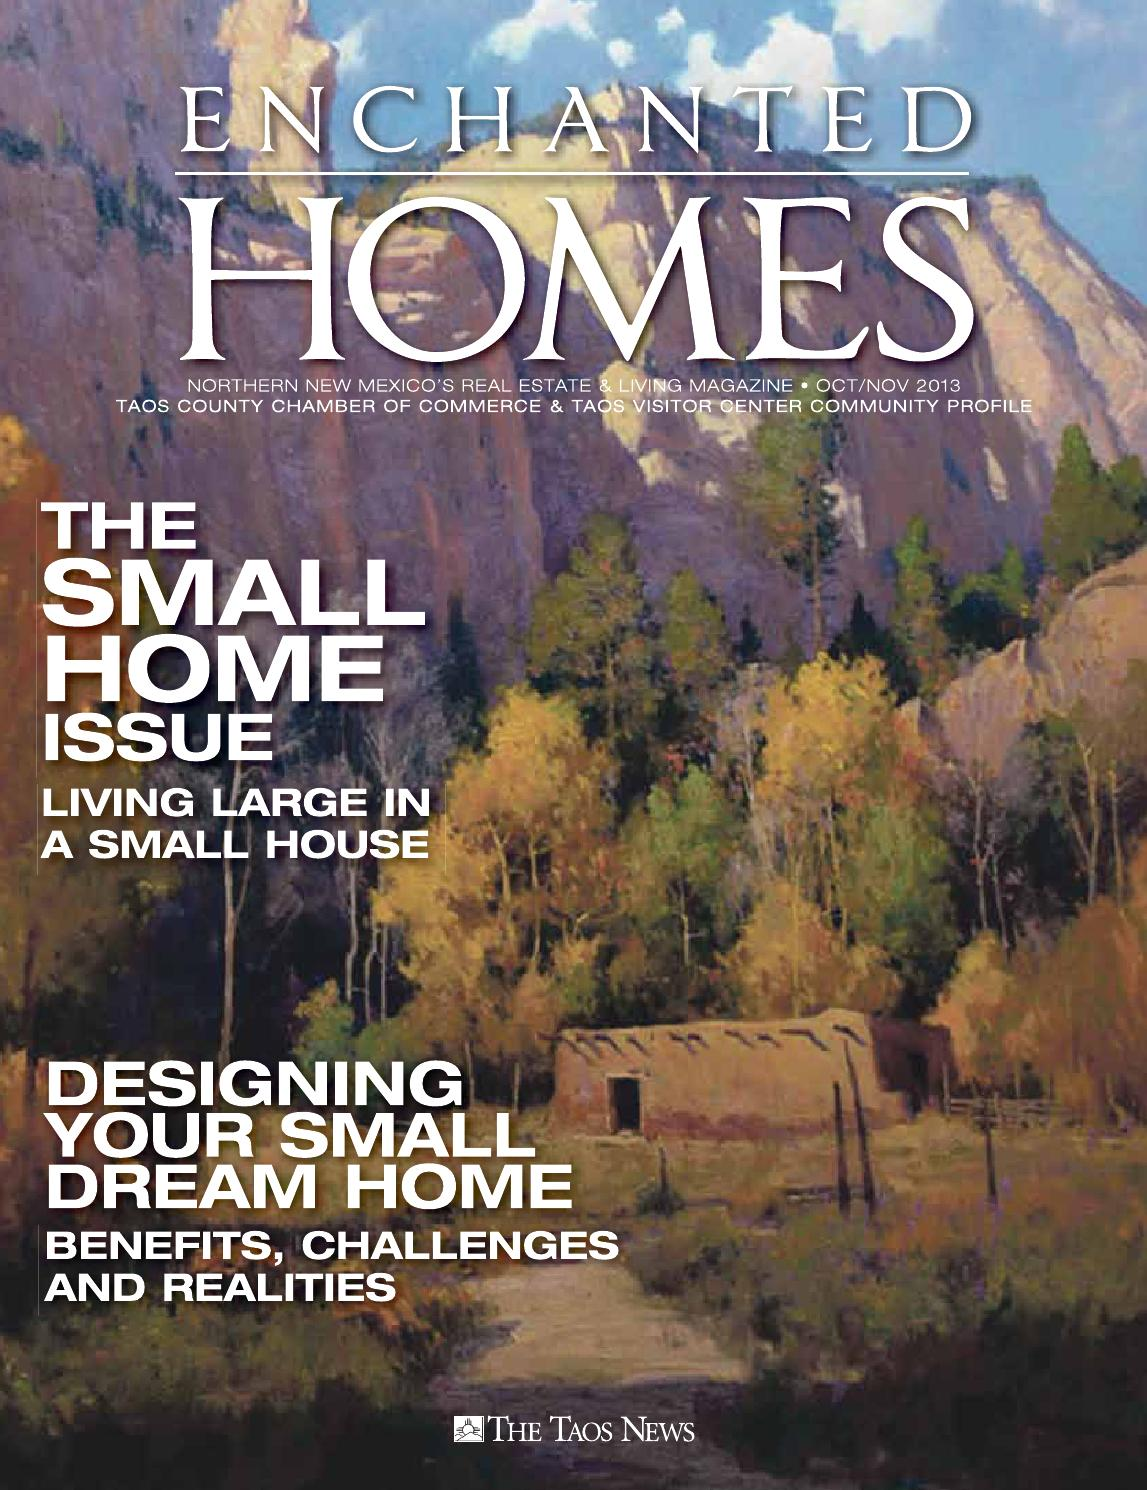 Enchanted homes the small home issue by the taos news issuu publicscrutiny Images